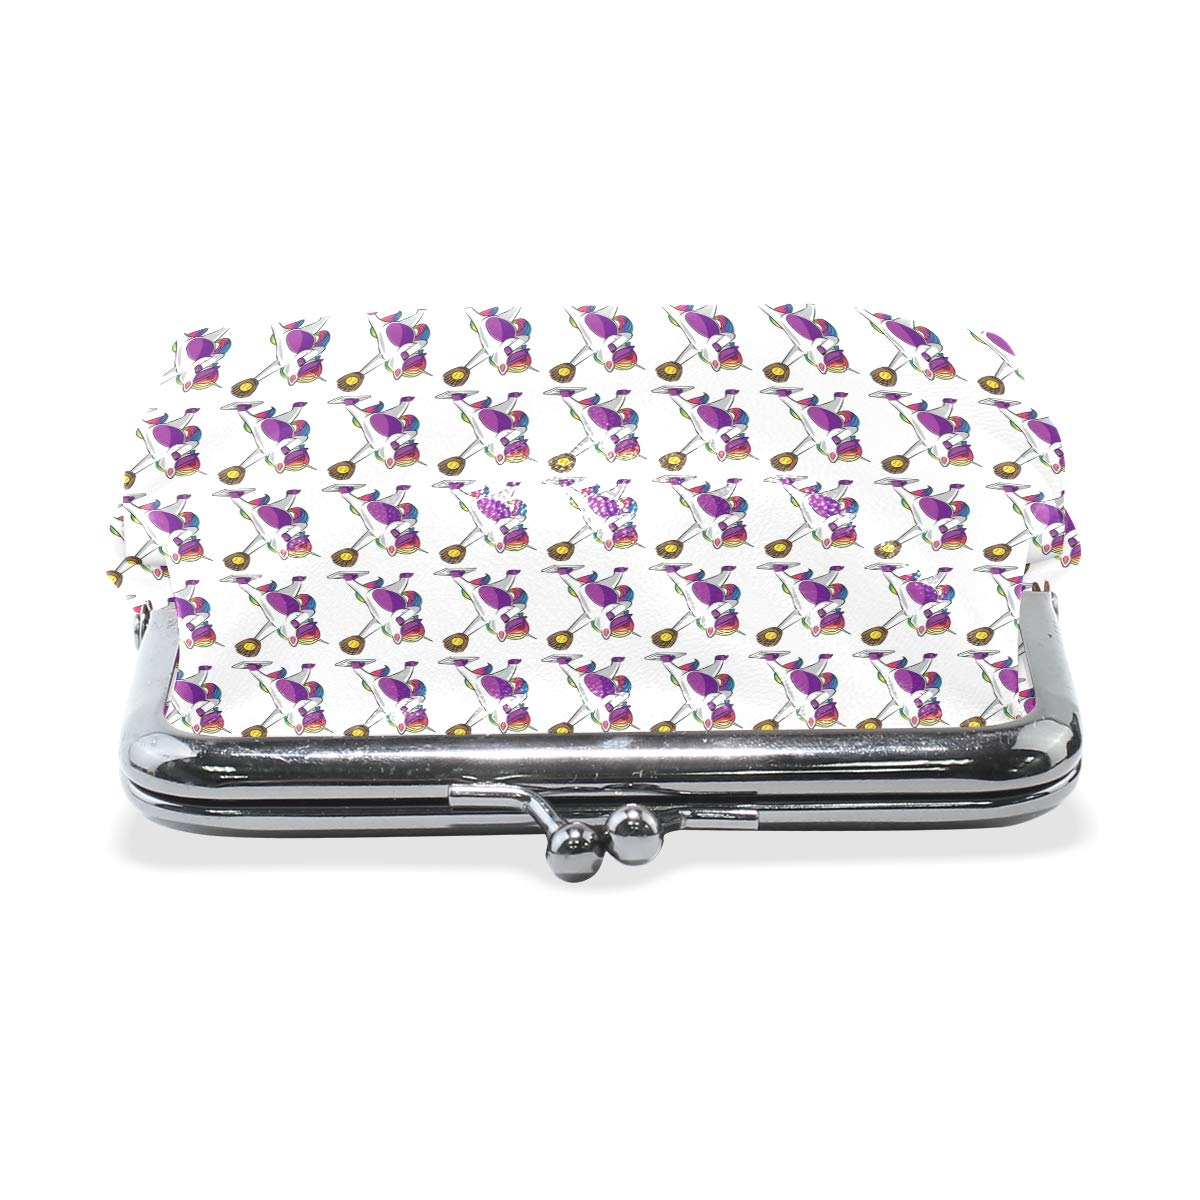 Exquisite Buckle Coin Purses Dabbing Unicorn Softball Funny Gift Mini Wallet Key Card Holder Purse for Women